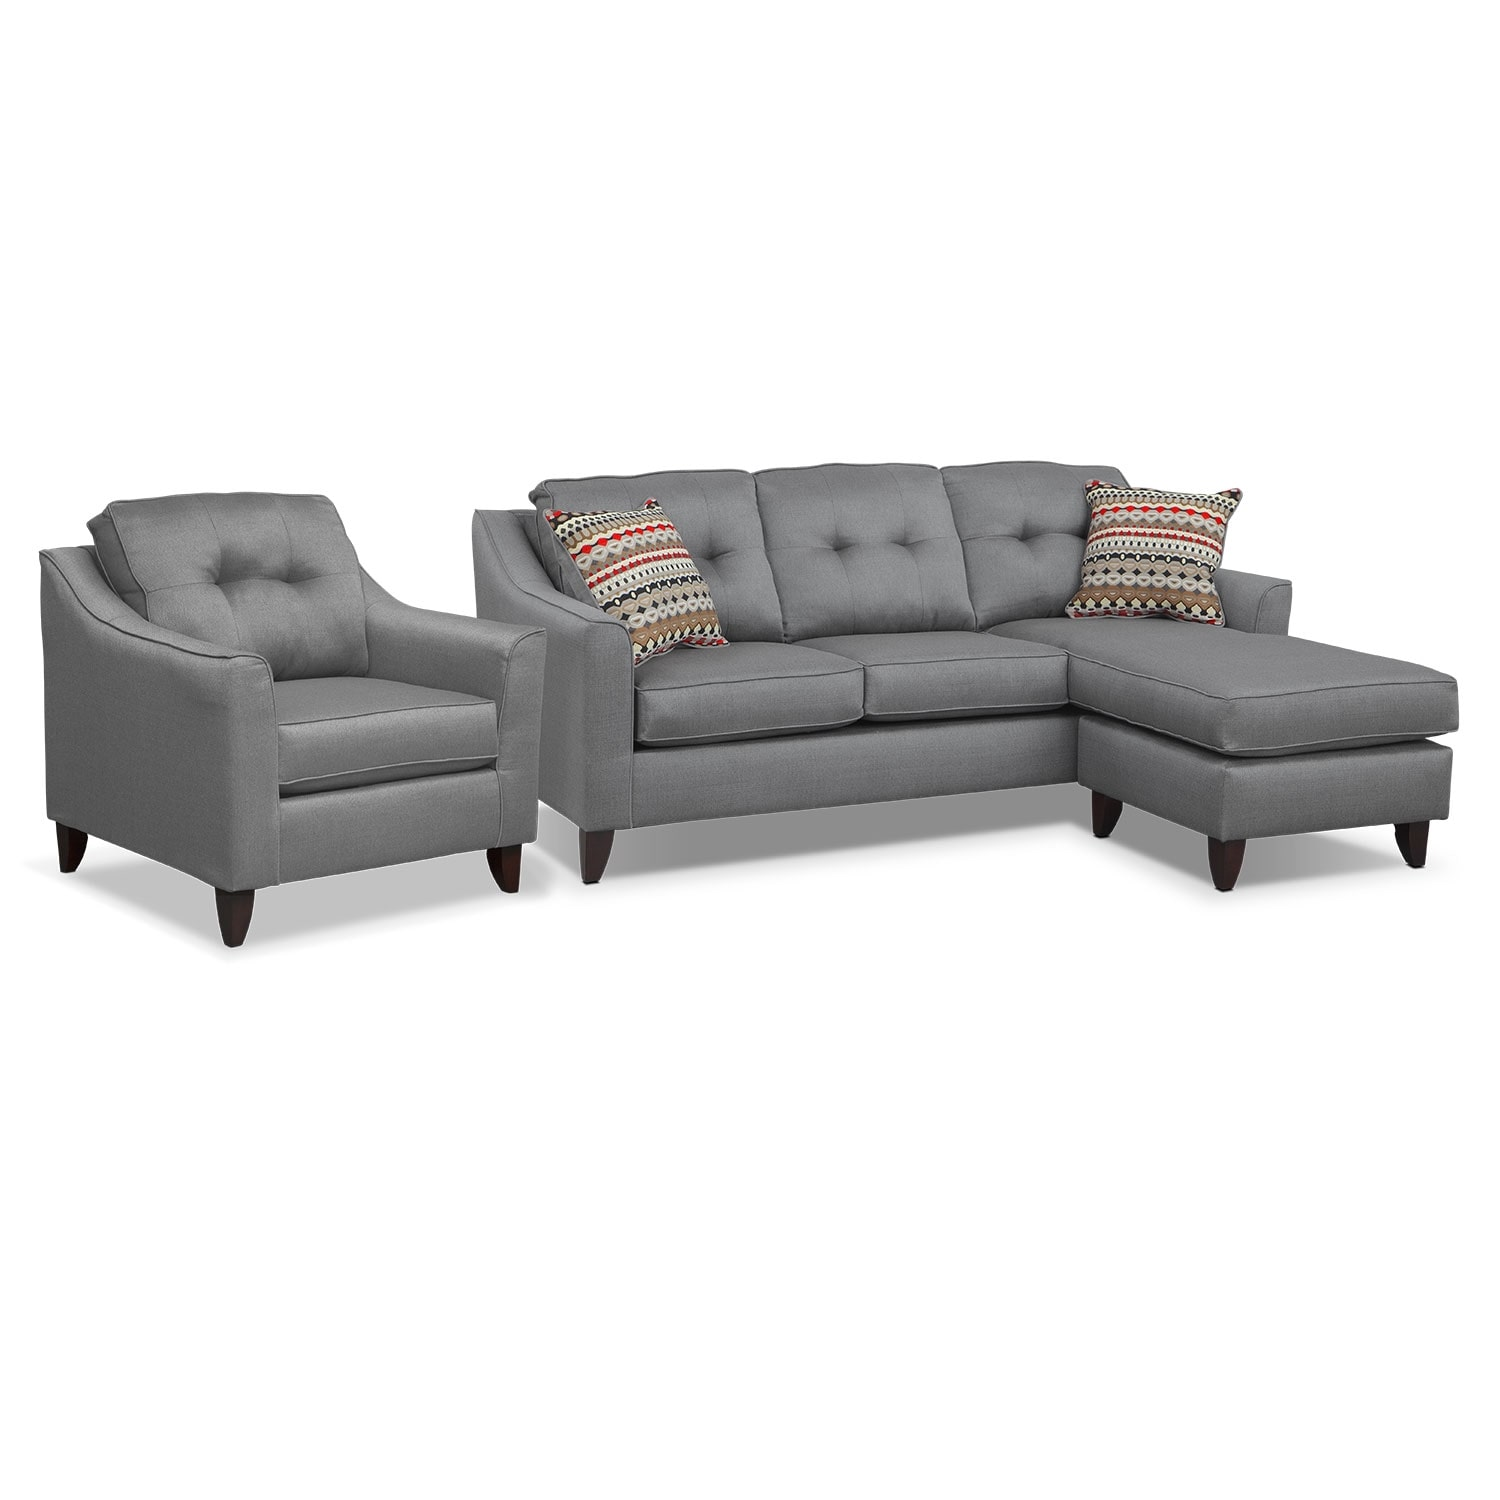 Marco Chaise Sofa And Chair Set Gray American Signature Furniture - American signature sofas